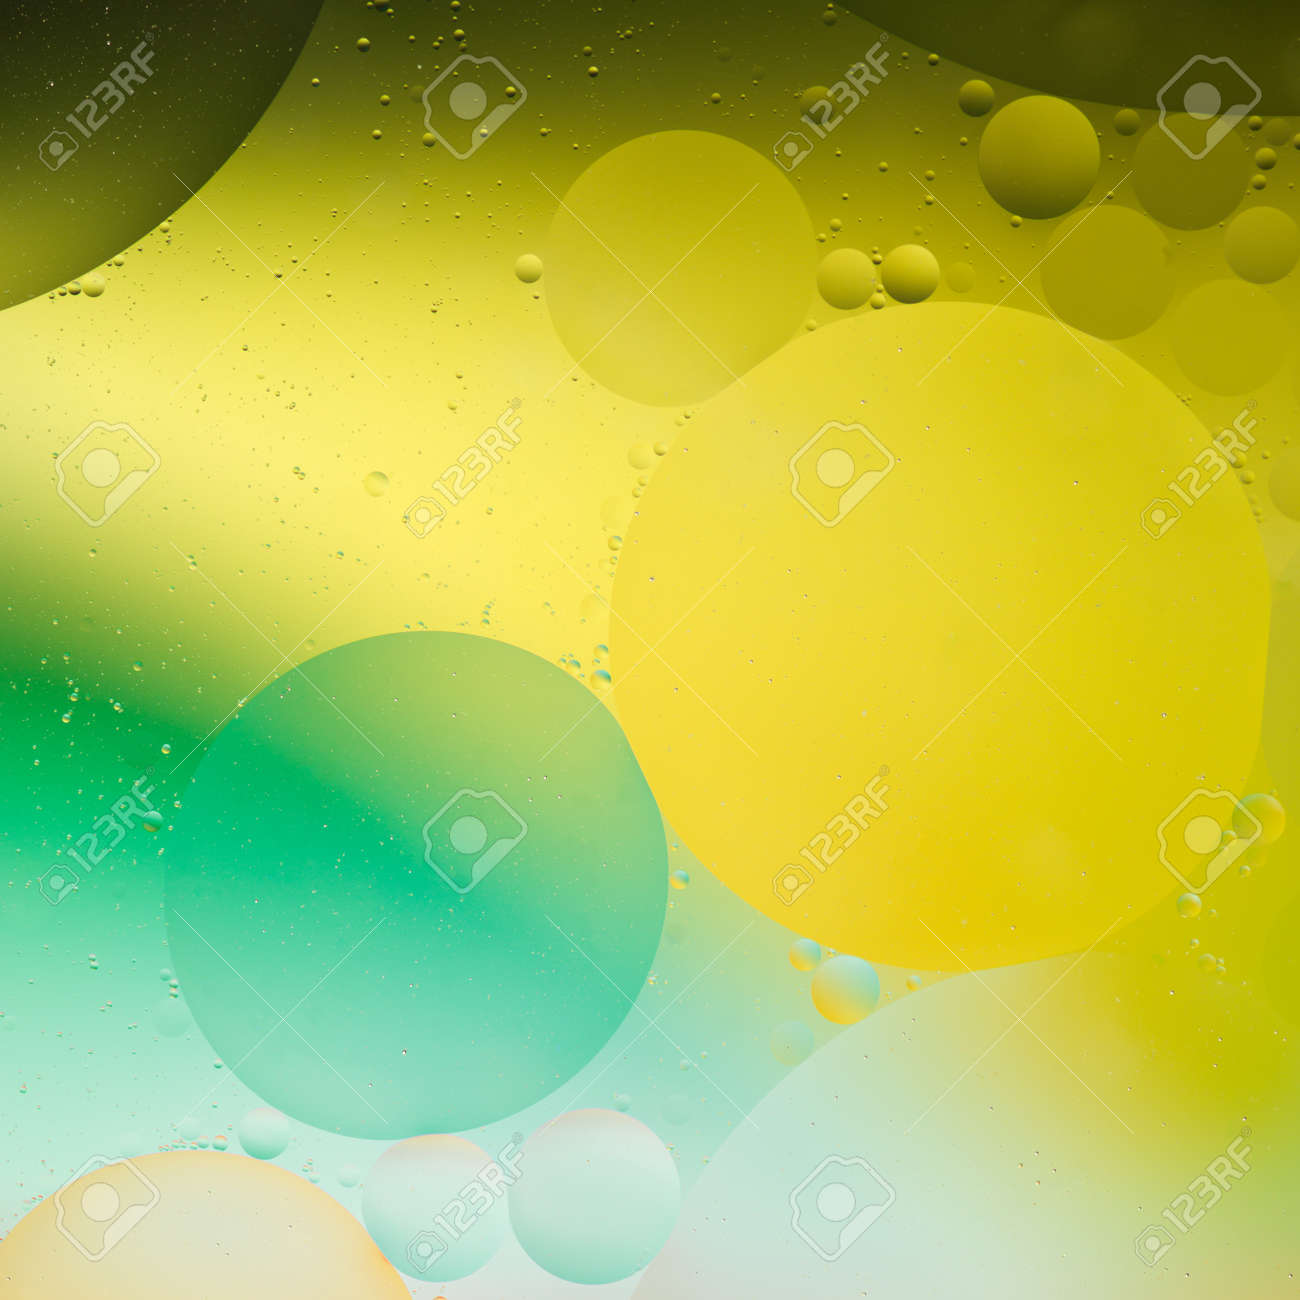 Creative Colorful Wallpaper, Oil On Water Stock Photo, Picture And ...